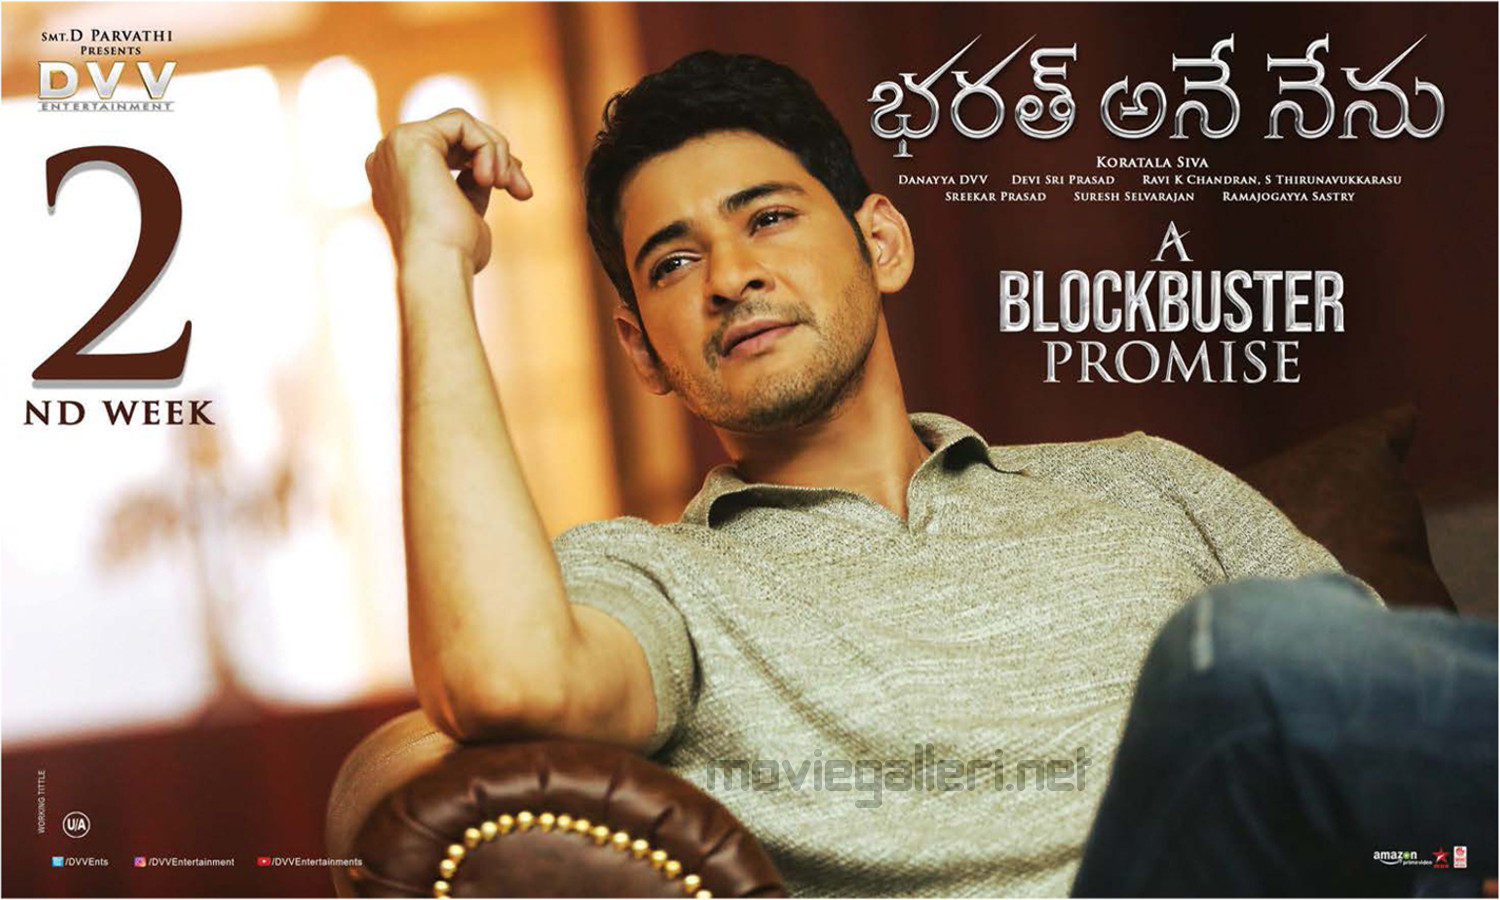 Mahesh Babu Bharat Ane Nenu Movie 2nd Week Posters